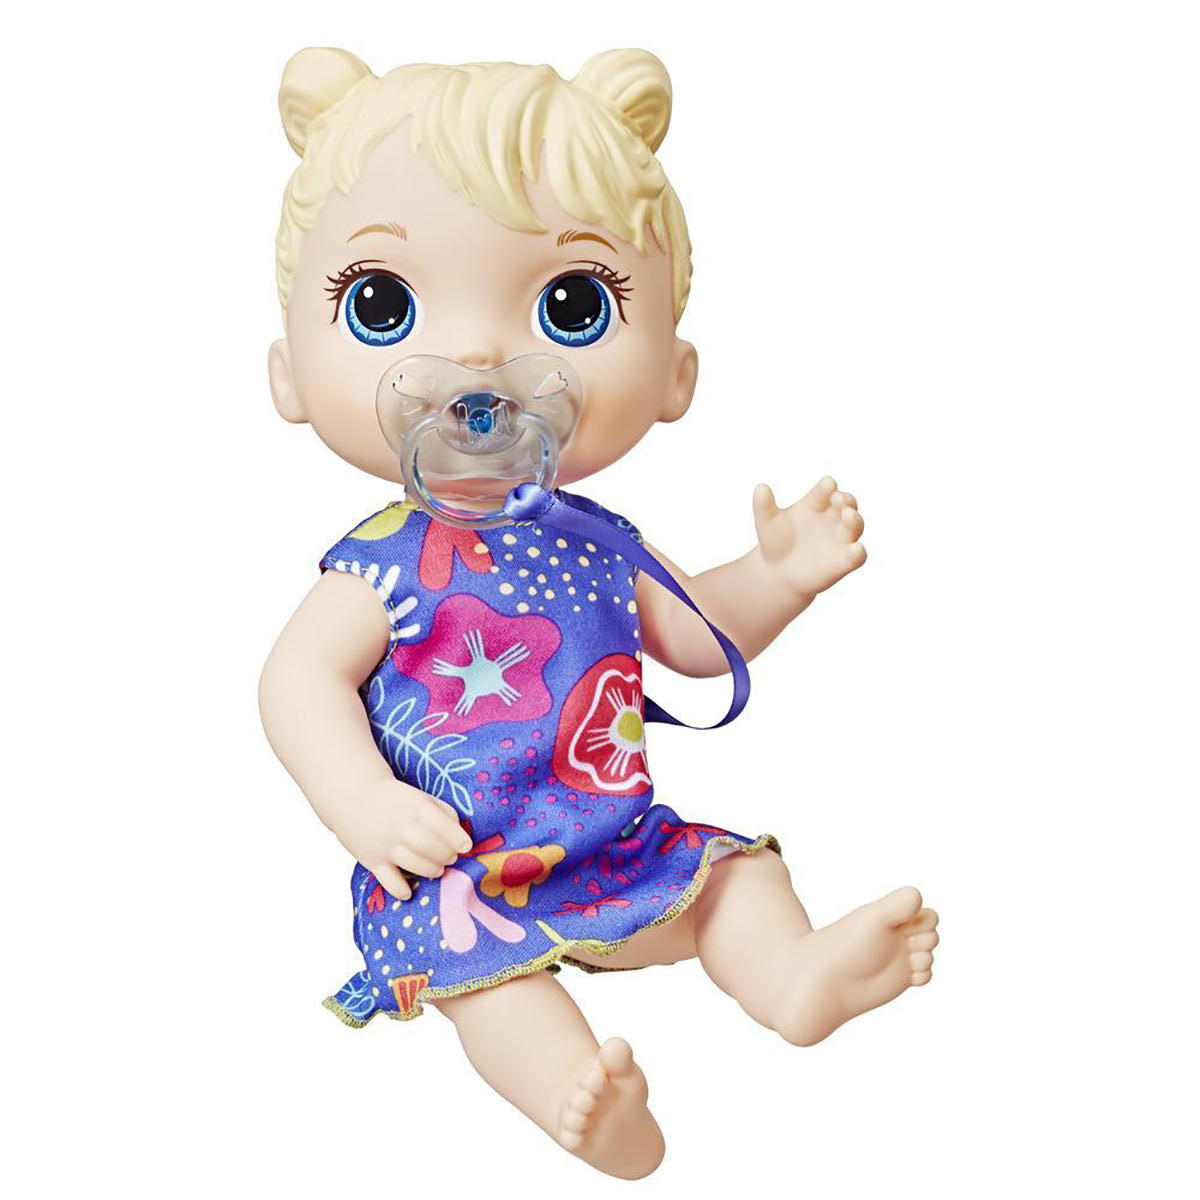 Baby Dolls Vip Baby Alive Baby Lil Sounds Blonde Hair Baby Doll